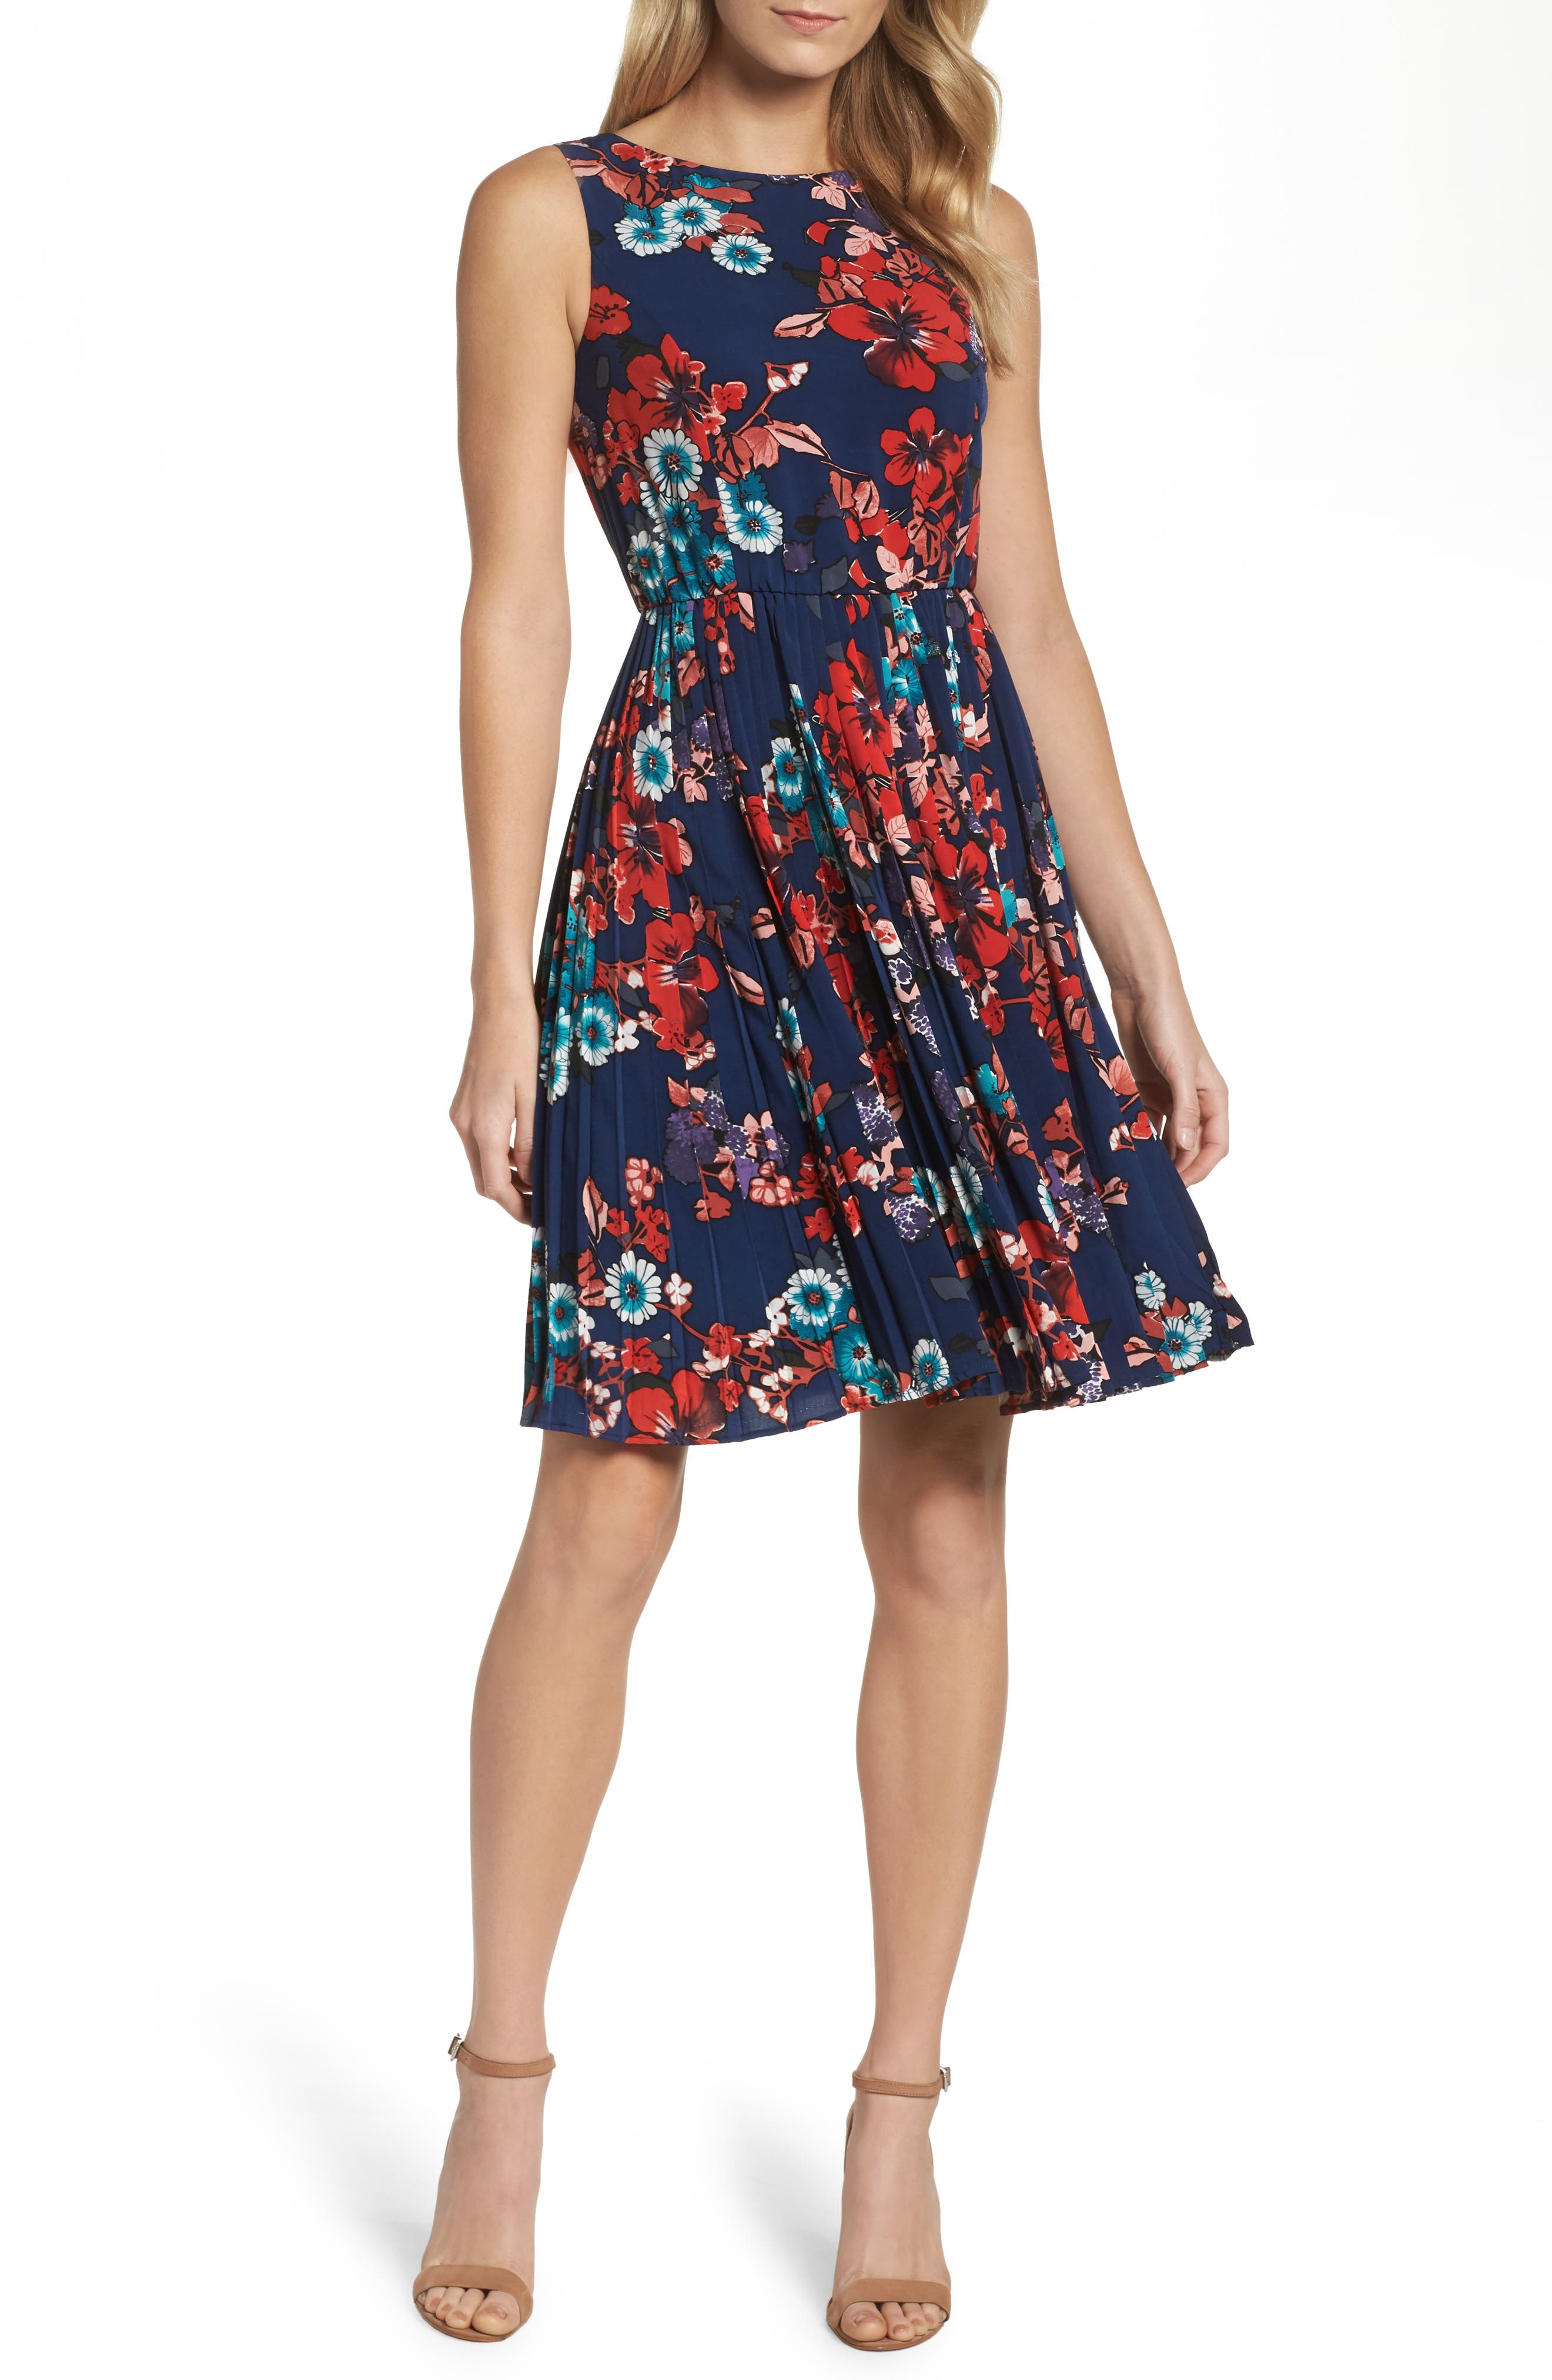 Adrianna Papell Botanical Soiree Fit & Flare Dress